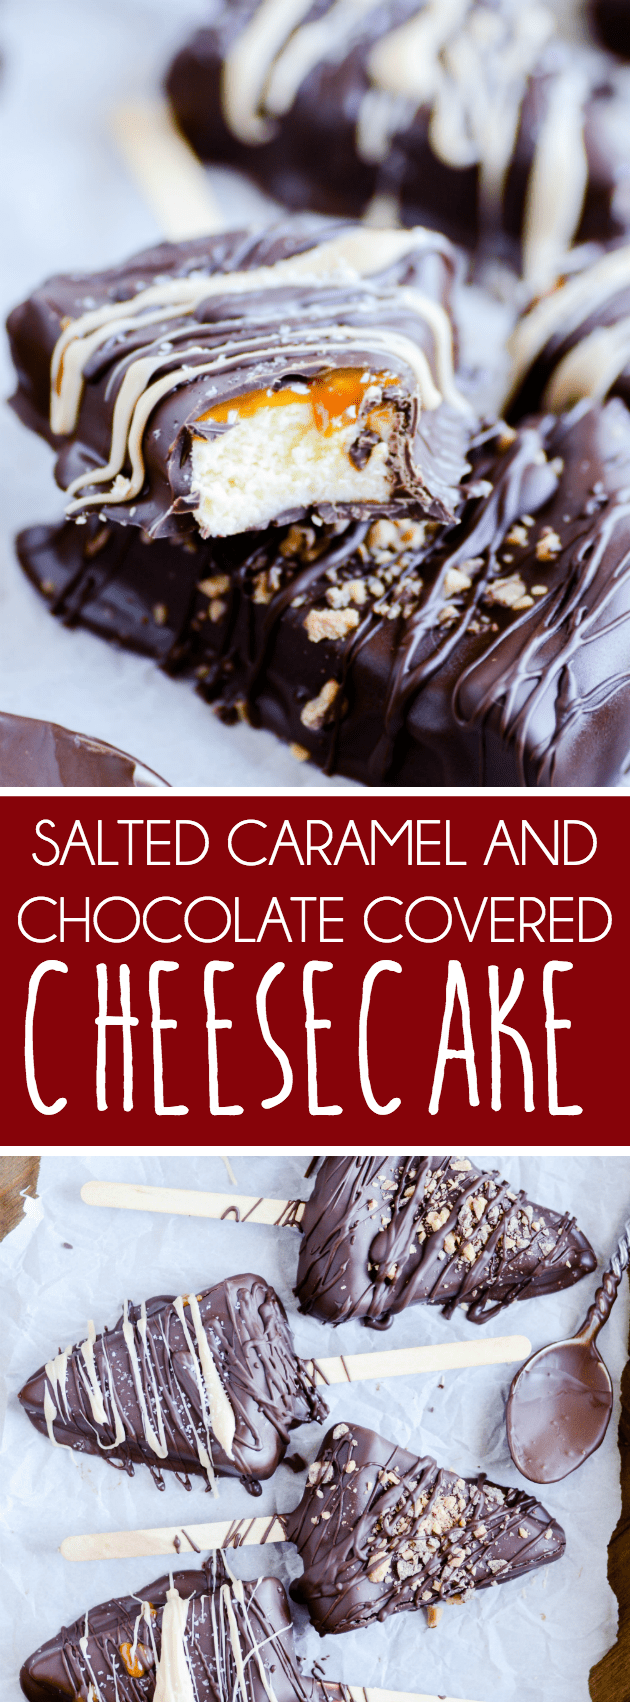 My new favorite 3-step cheesecake covered in chocolate, stuffed with salted caramel, and sprinkled with toffee.